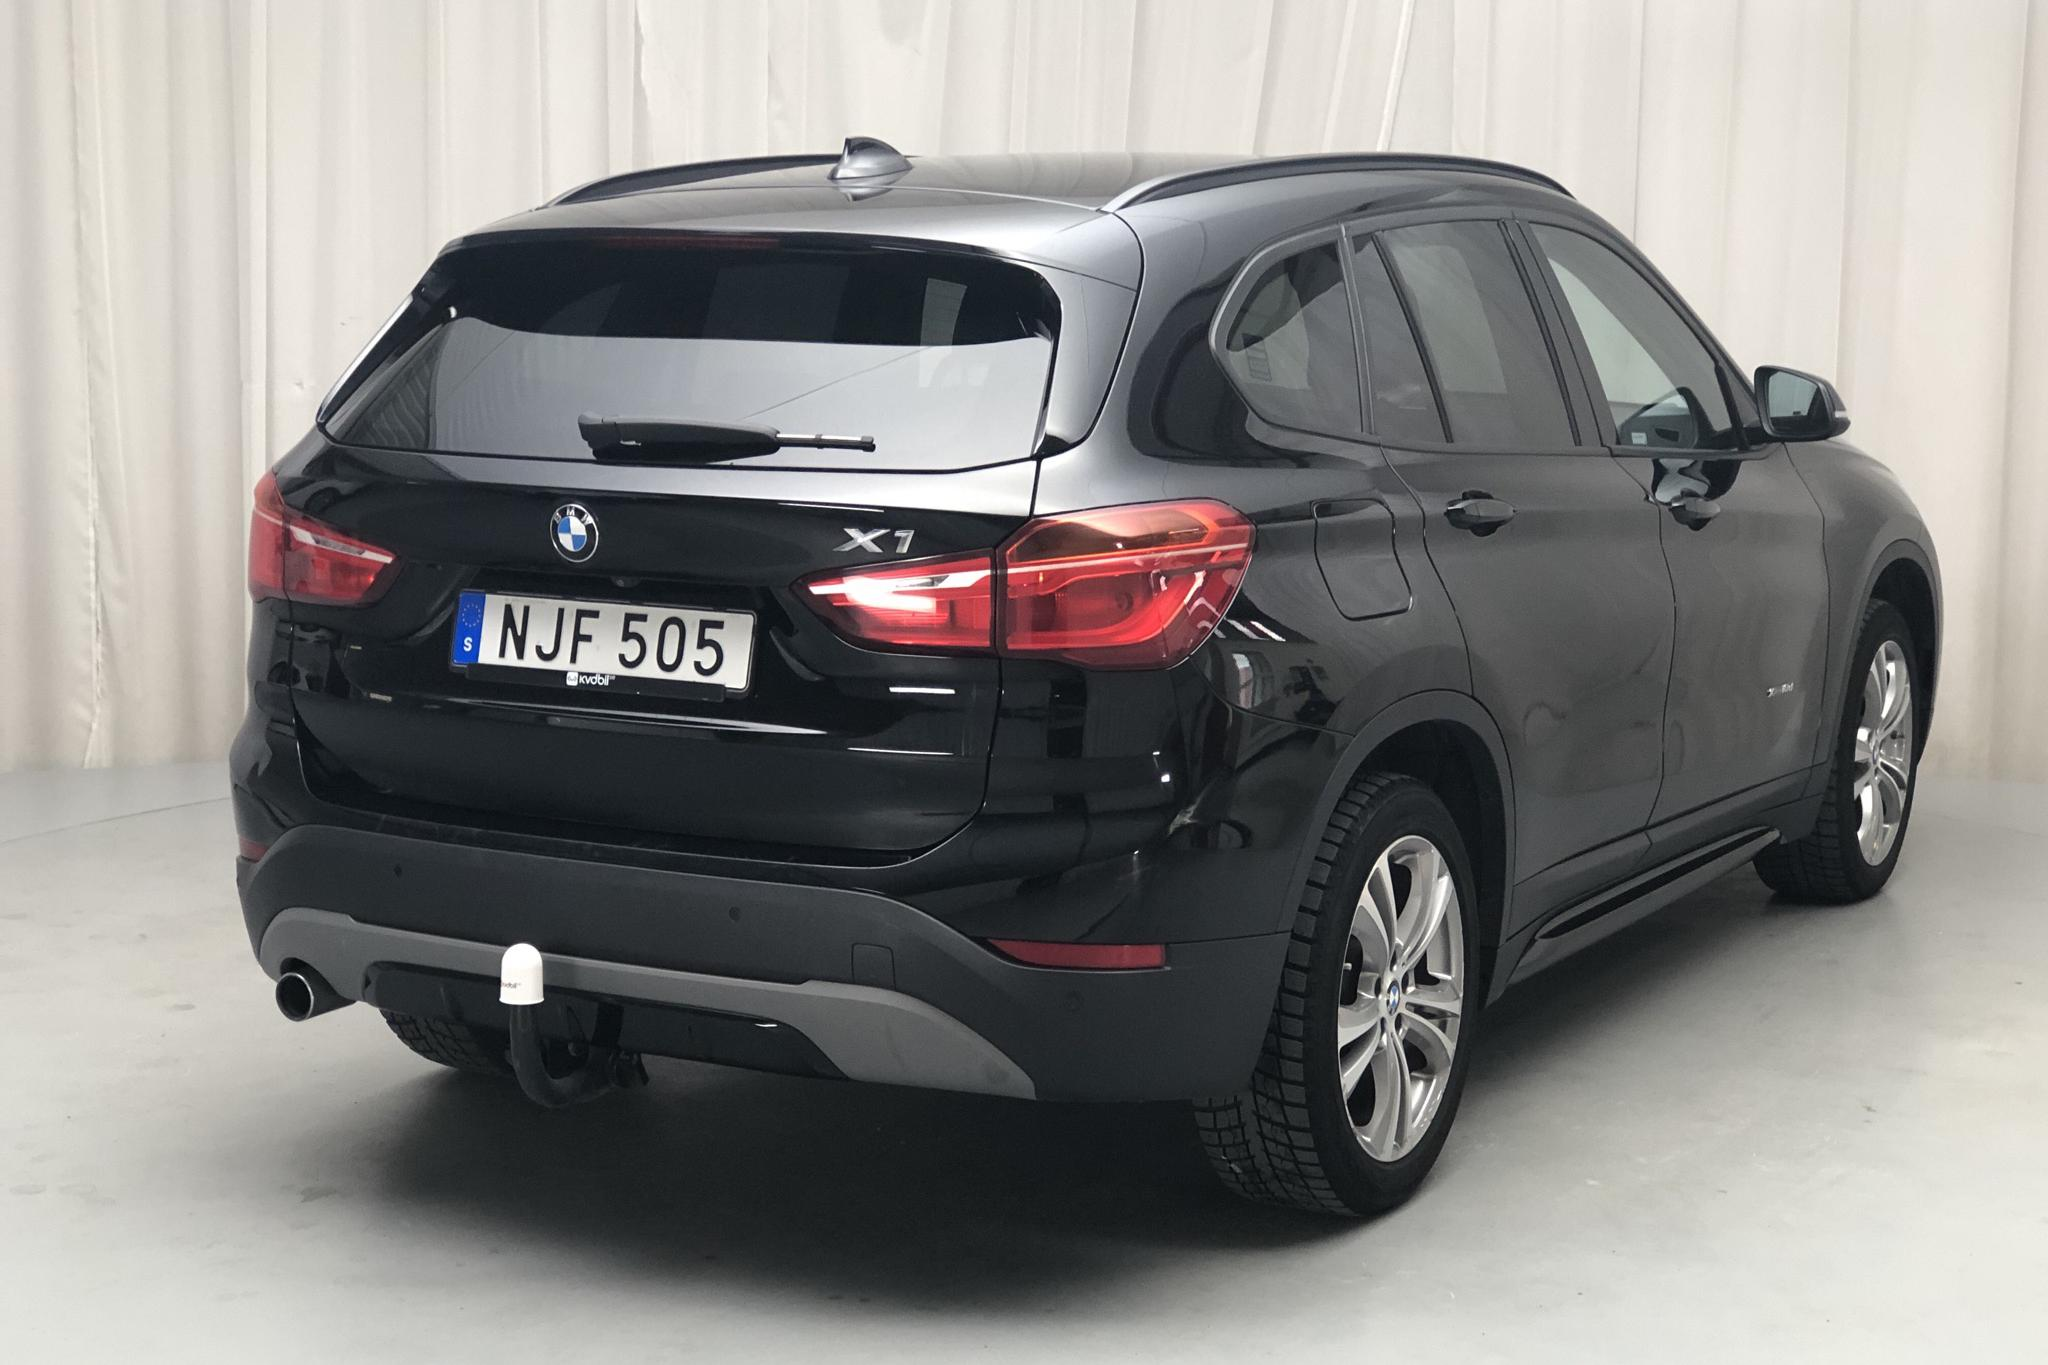 BMW X1 xDrive18d, F48 (150hk) - 109 700 km - Automatic - black - 2017